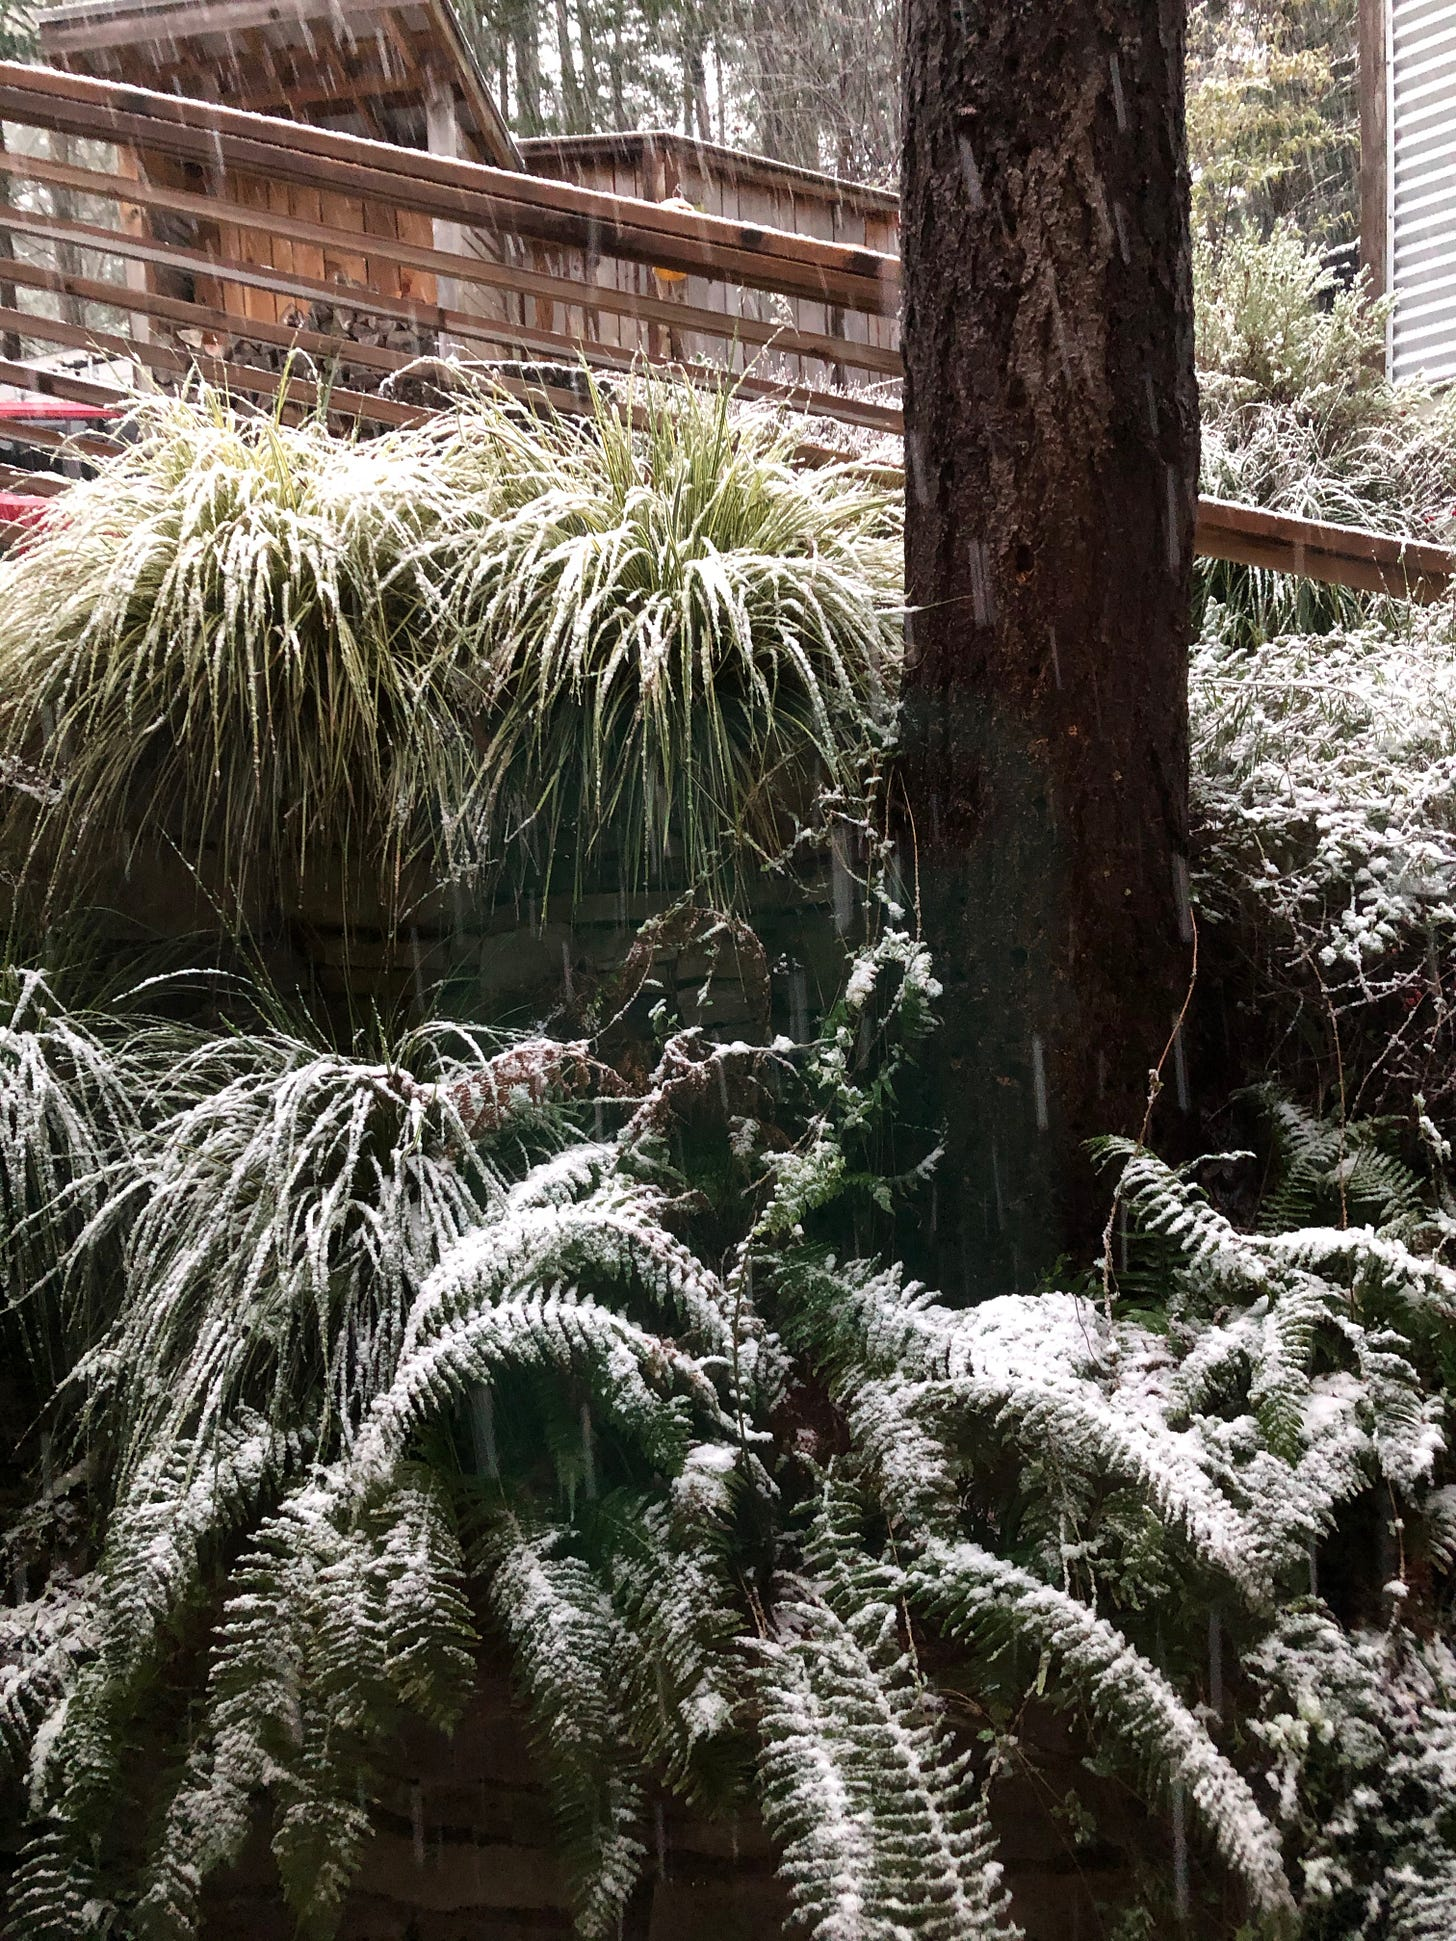 Morning snow blankets the garden on Salt Spring Island